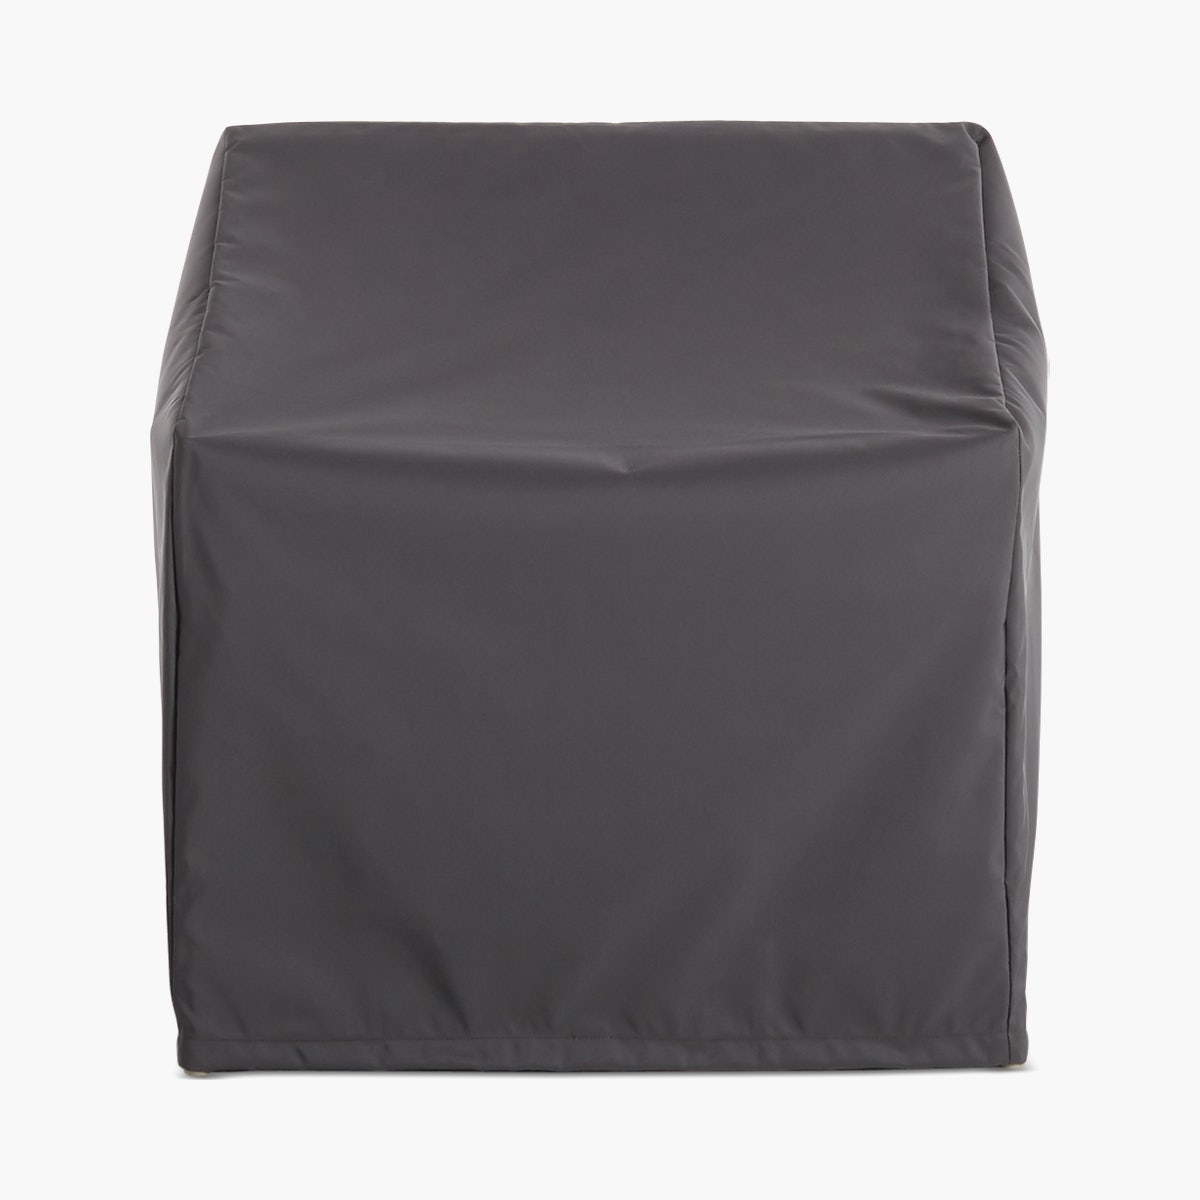 Sommer Lounge Chair Cover